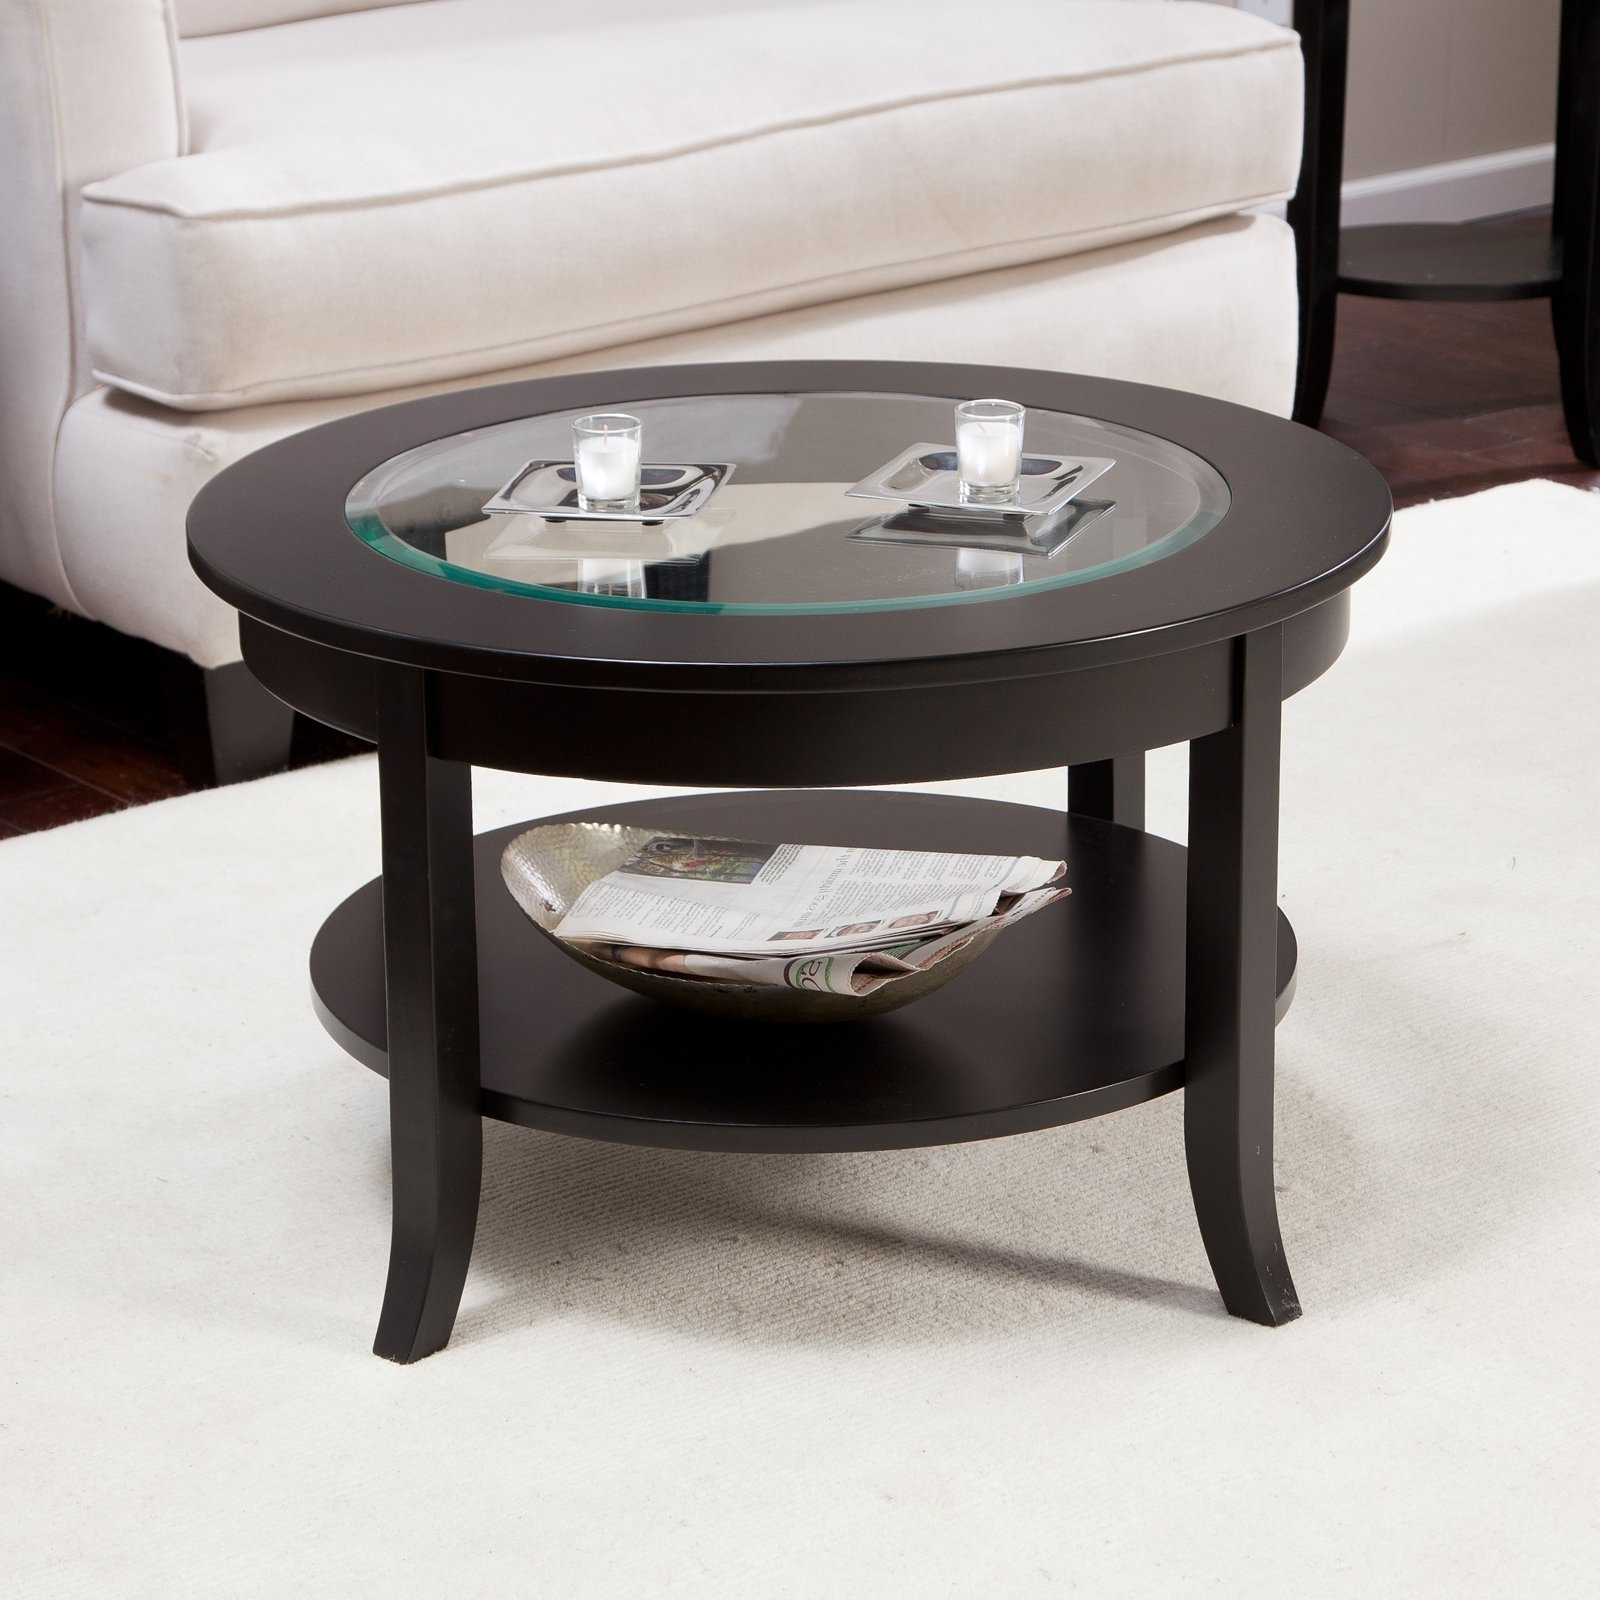 buffet furniture probably super great oval wood end table small glass top coffee round coffees tables square elegant sets large tablecloth for living room pottery barn ott makeup